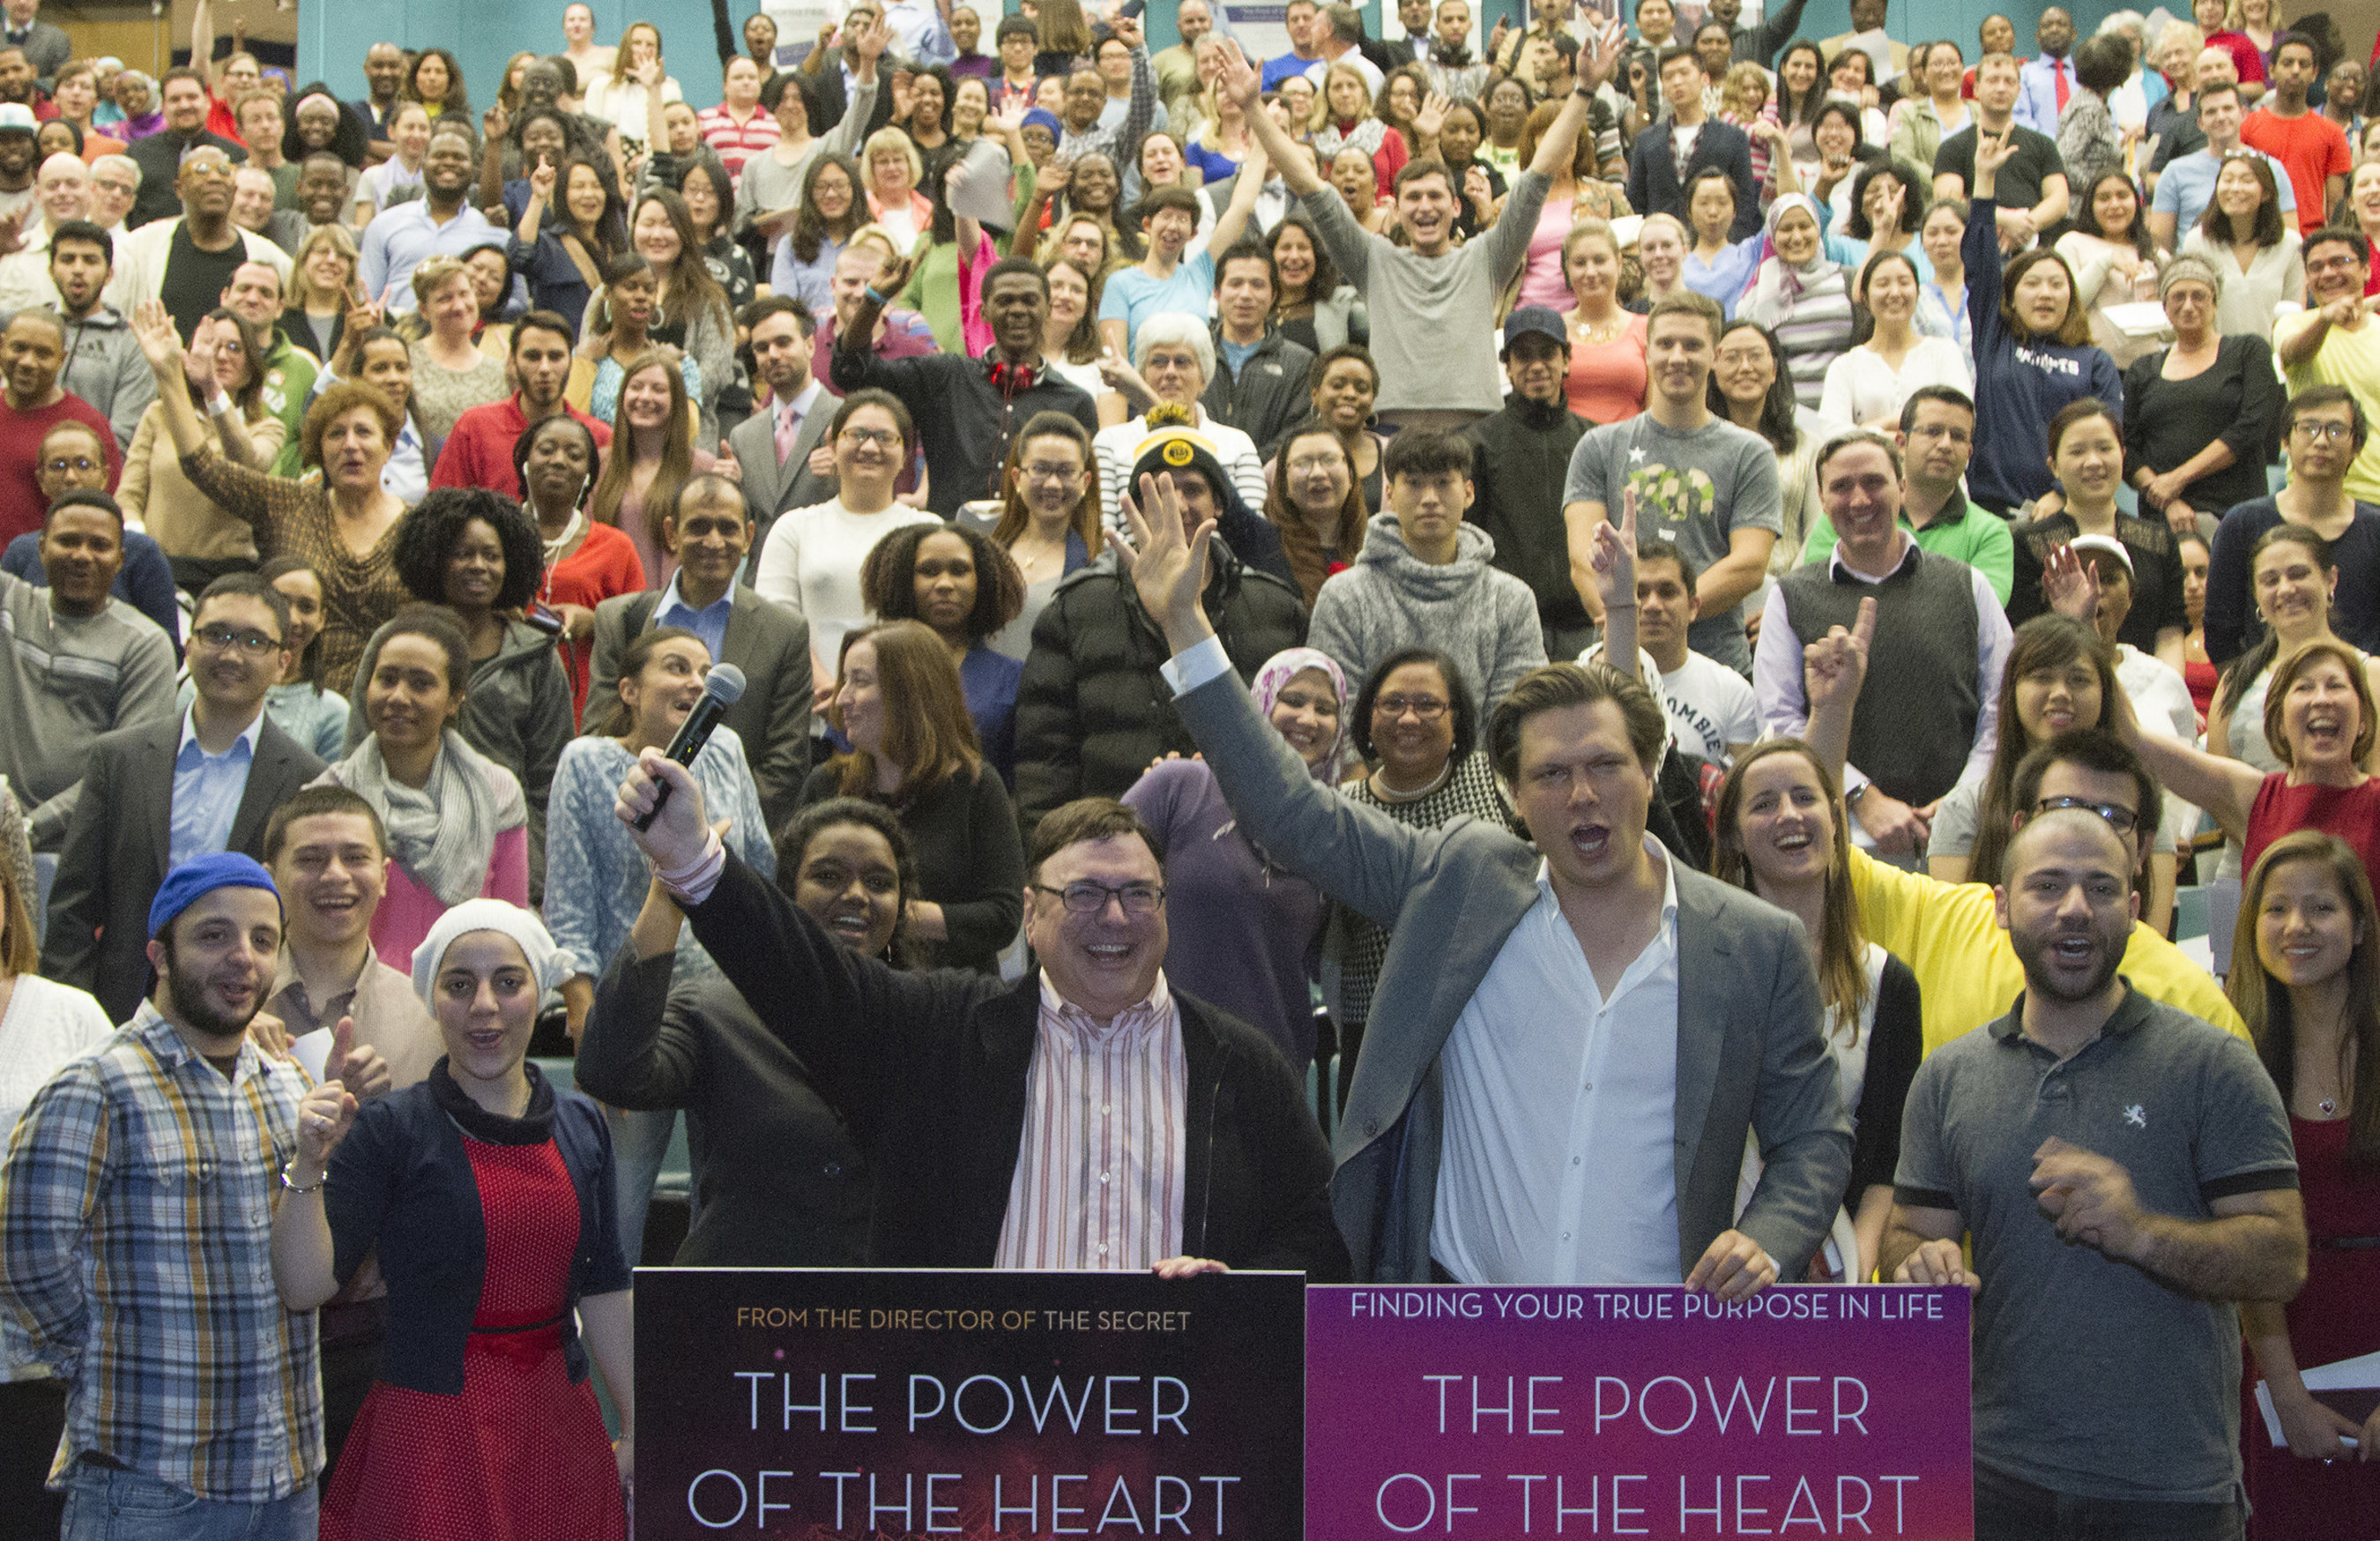 An overflow audience cheers the words of author and filmmaker Baptist de Pape (at right podium) at the presentation of his film The Power of the Heart.